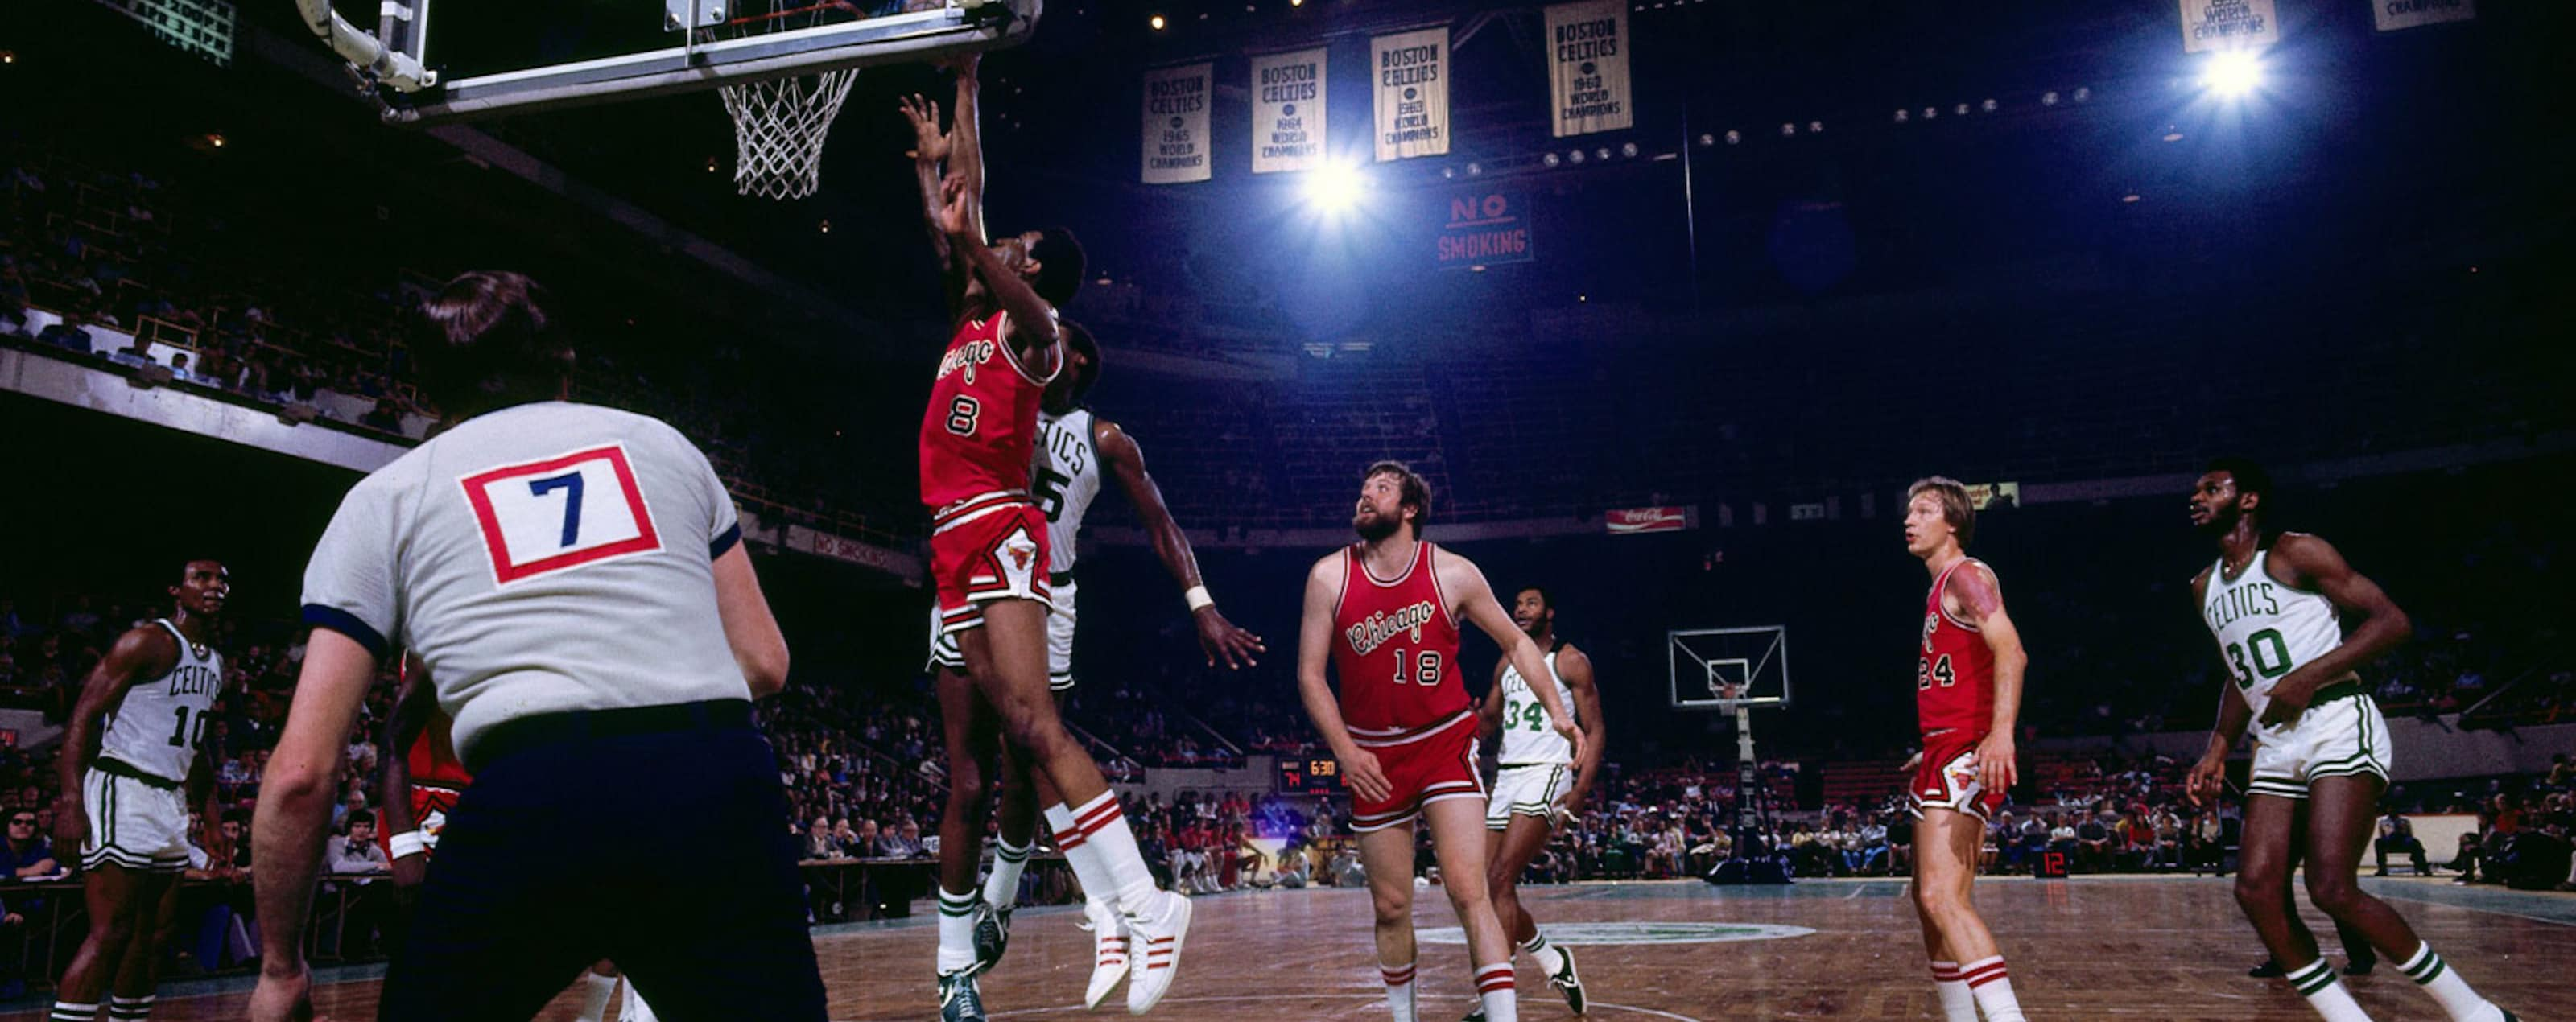 BOSTON - 1975: Mickey Johnson #8 of the Chicago Bulls shoots a layup against the Boston Celtics during a game played in 1975 at the Boston Garden in Boston, Massachusetts.